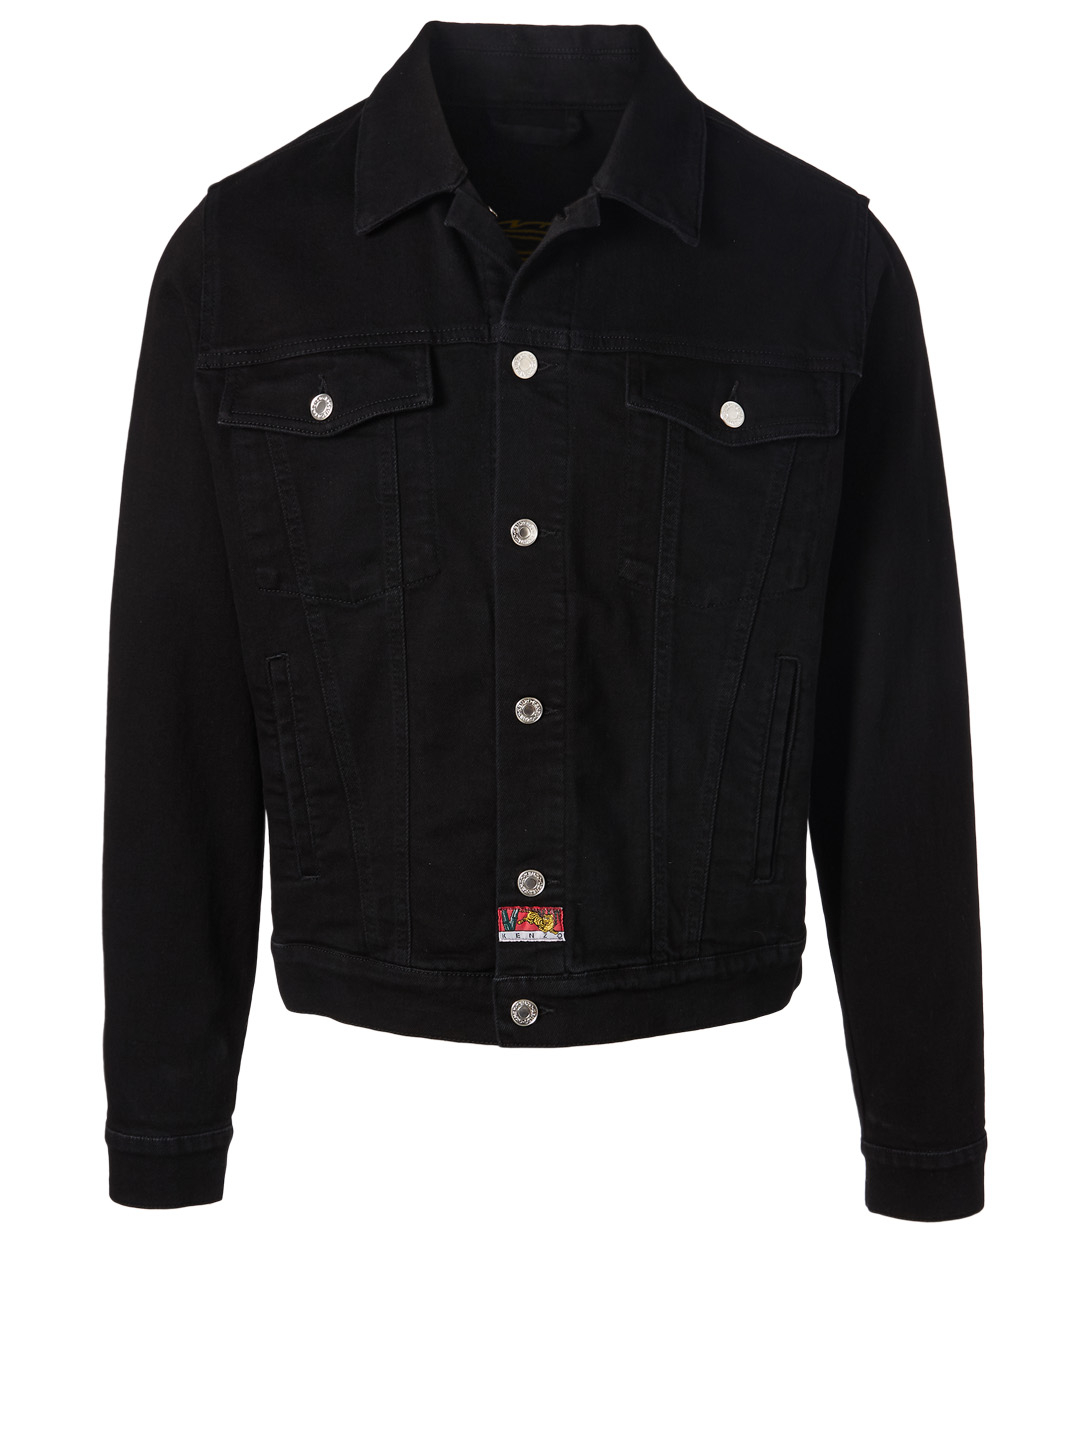 KENZO Phoenix Denim Jacket Men's Black